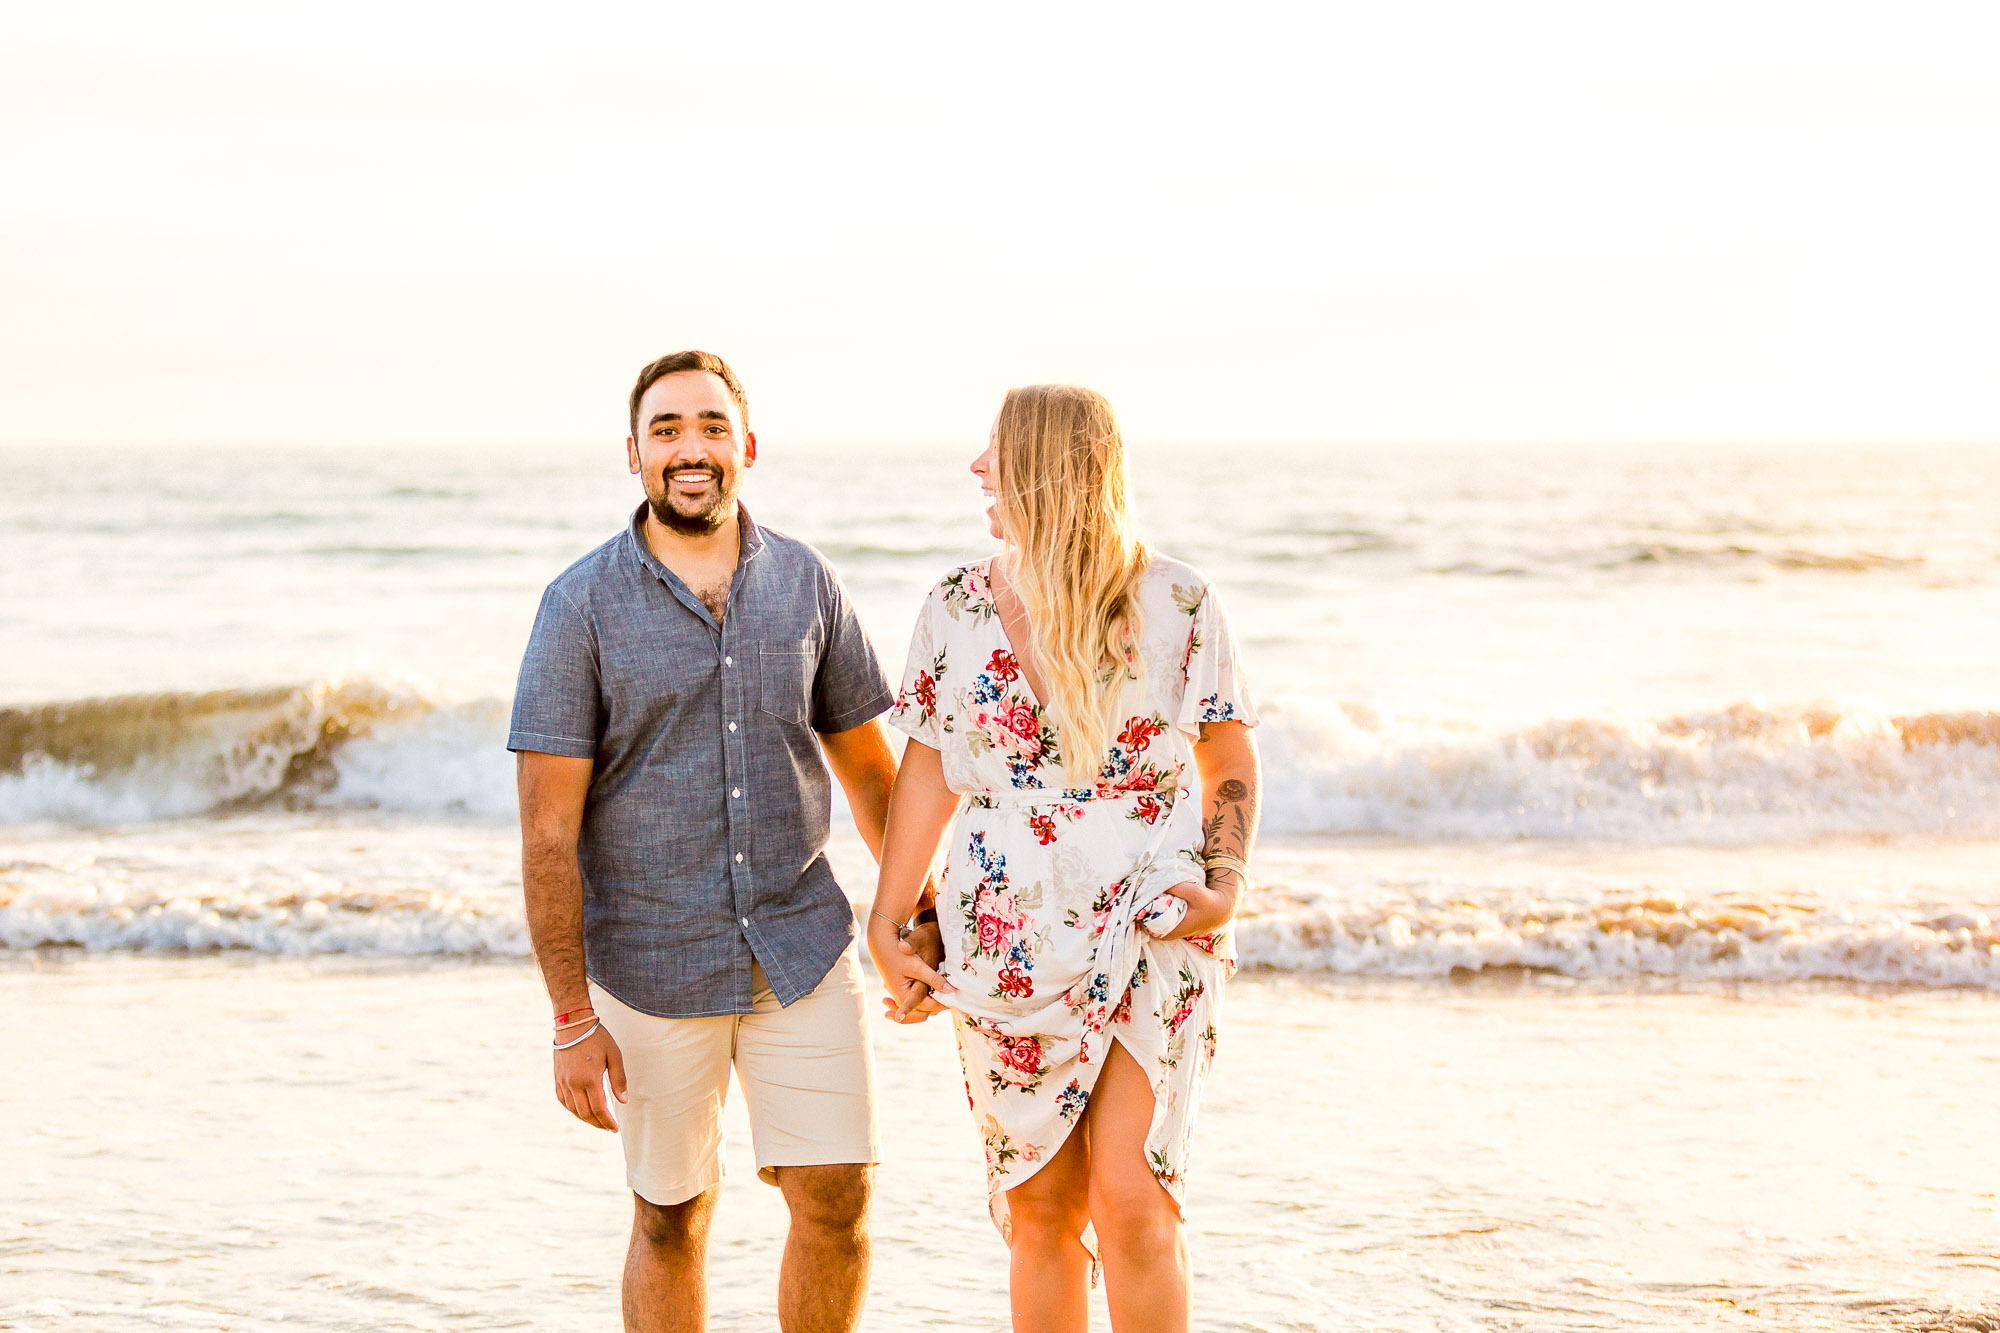 Justine_Puneet_Cardiff_Engagement_Session_223.jpg